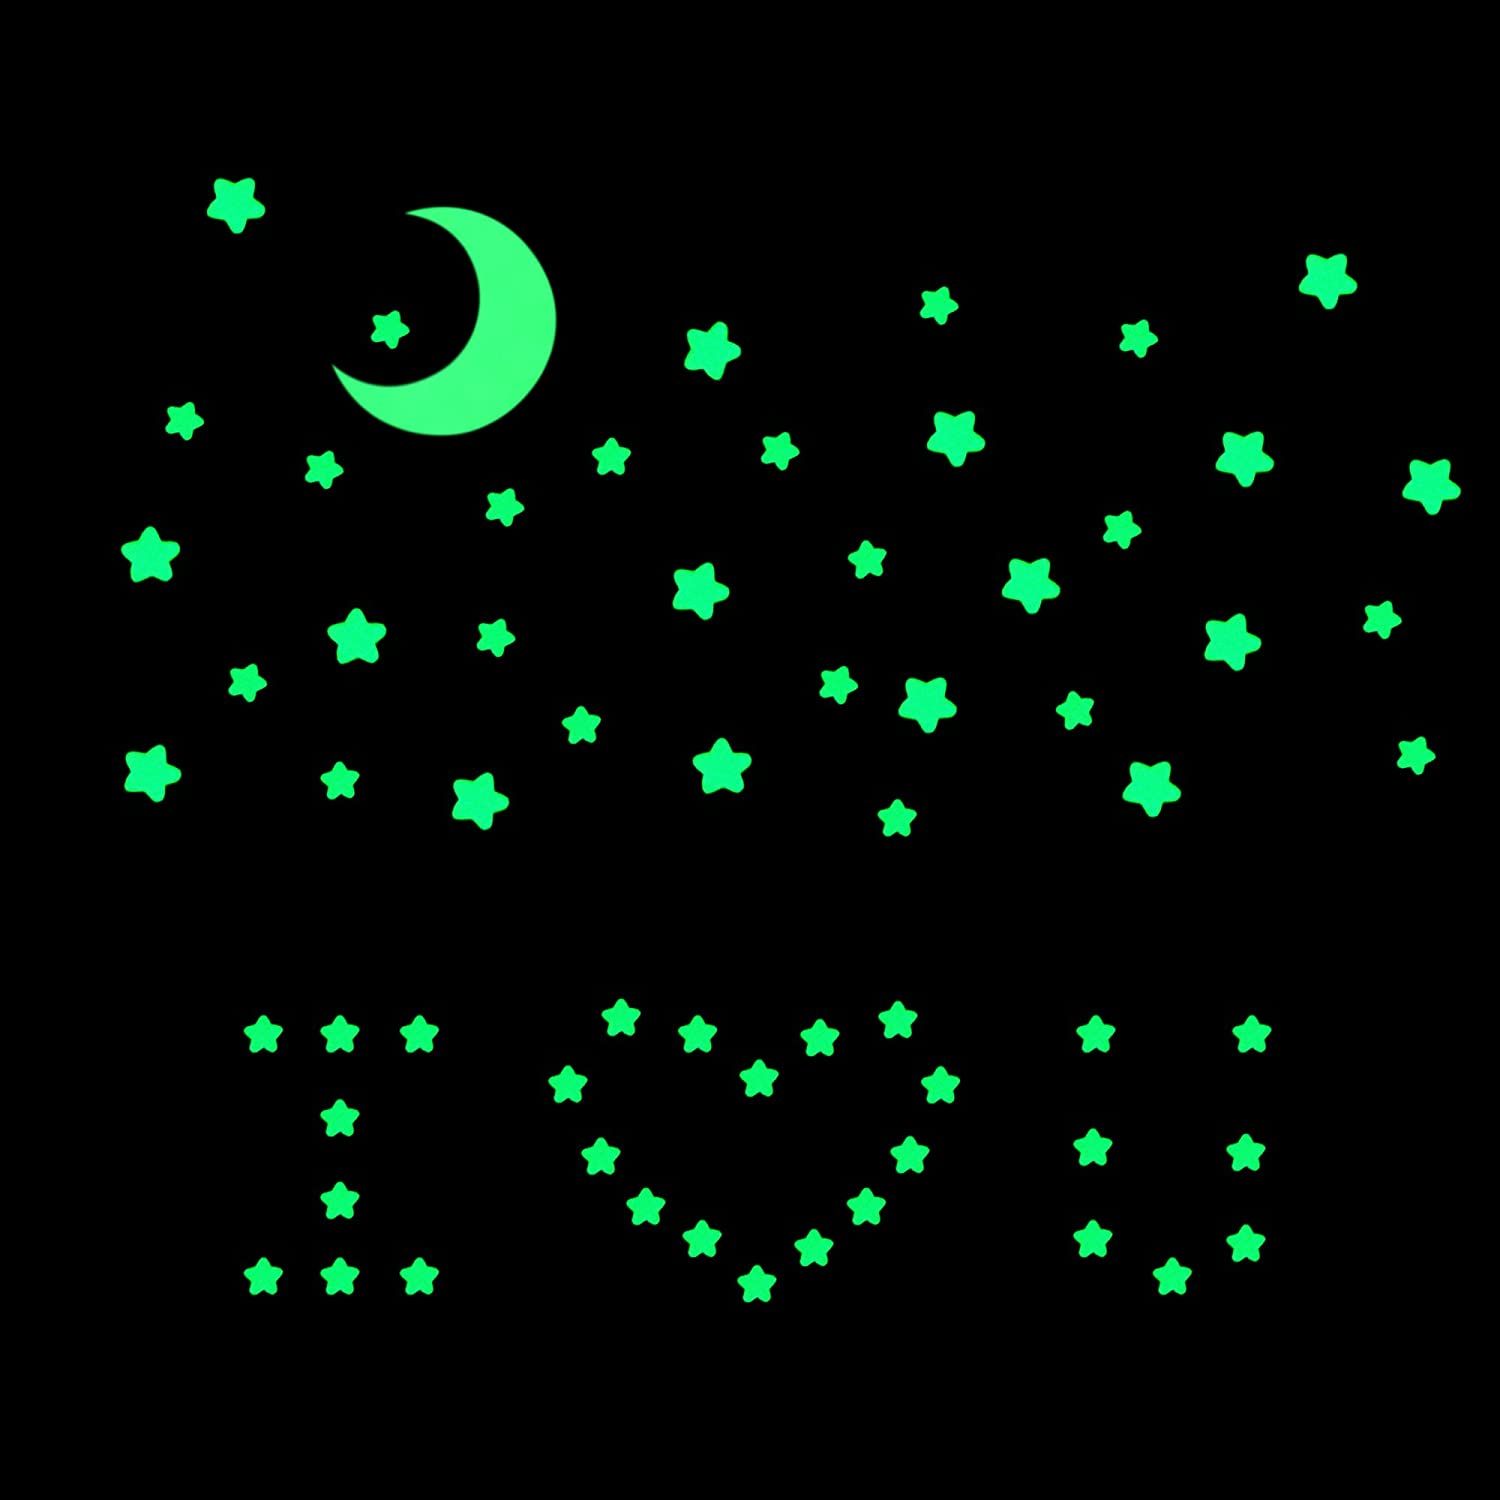 Oumers 4 Packs of Adhesive Wall Ceiling Decals for Baby Kids Bedroom Nursery Home Glow in The Dark Stars Moon